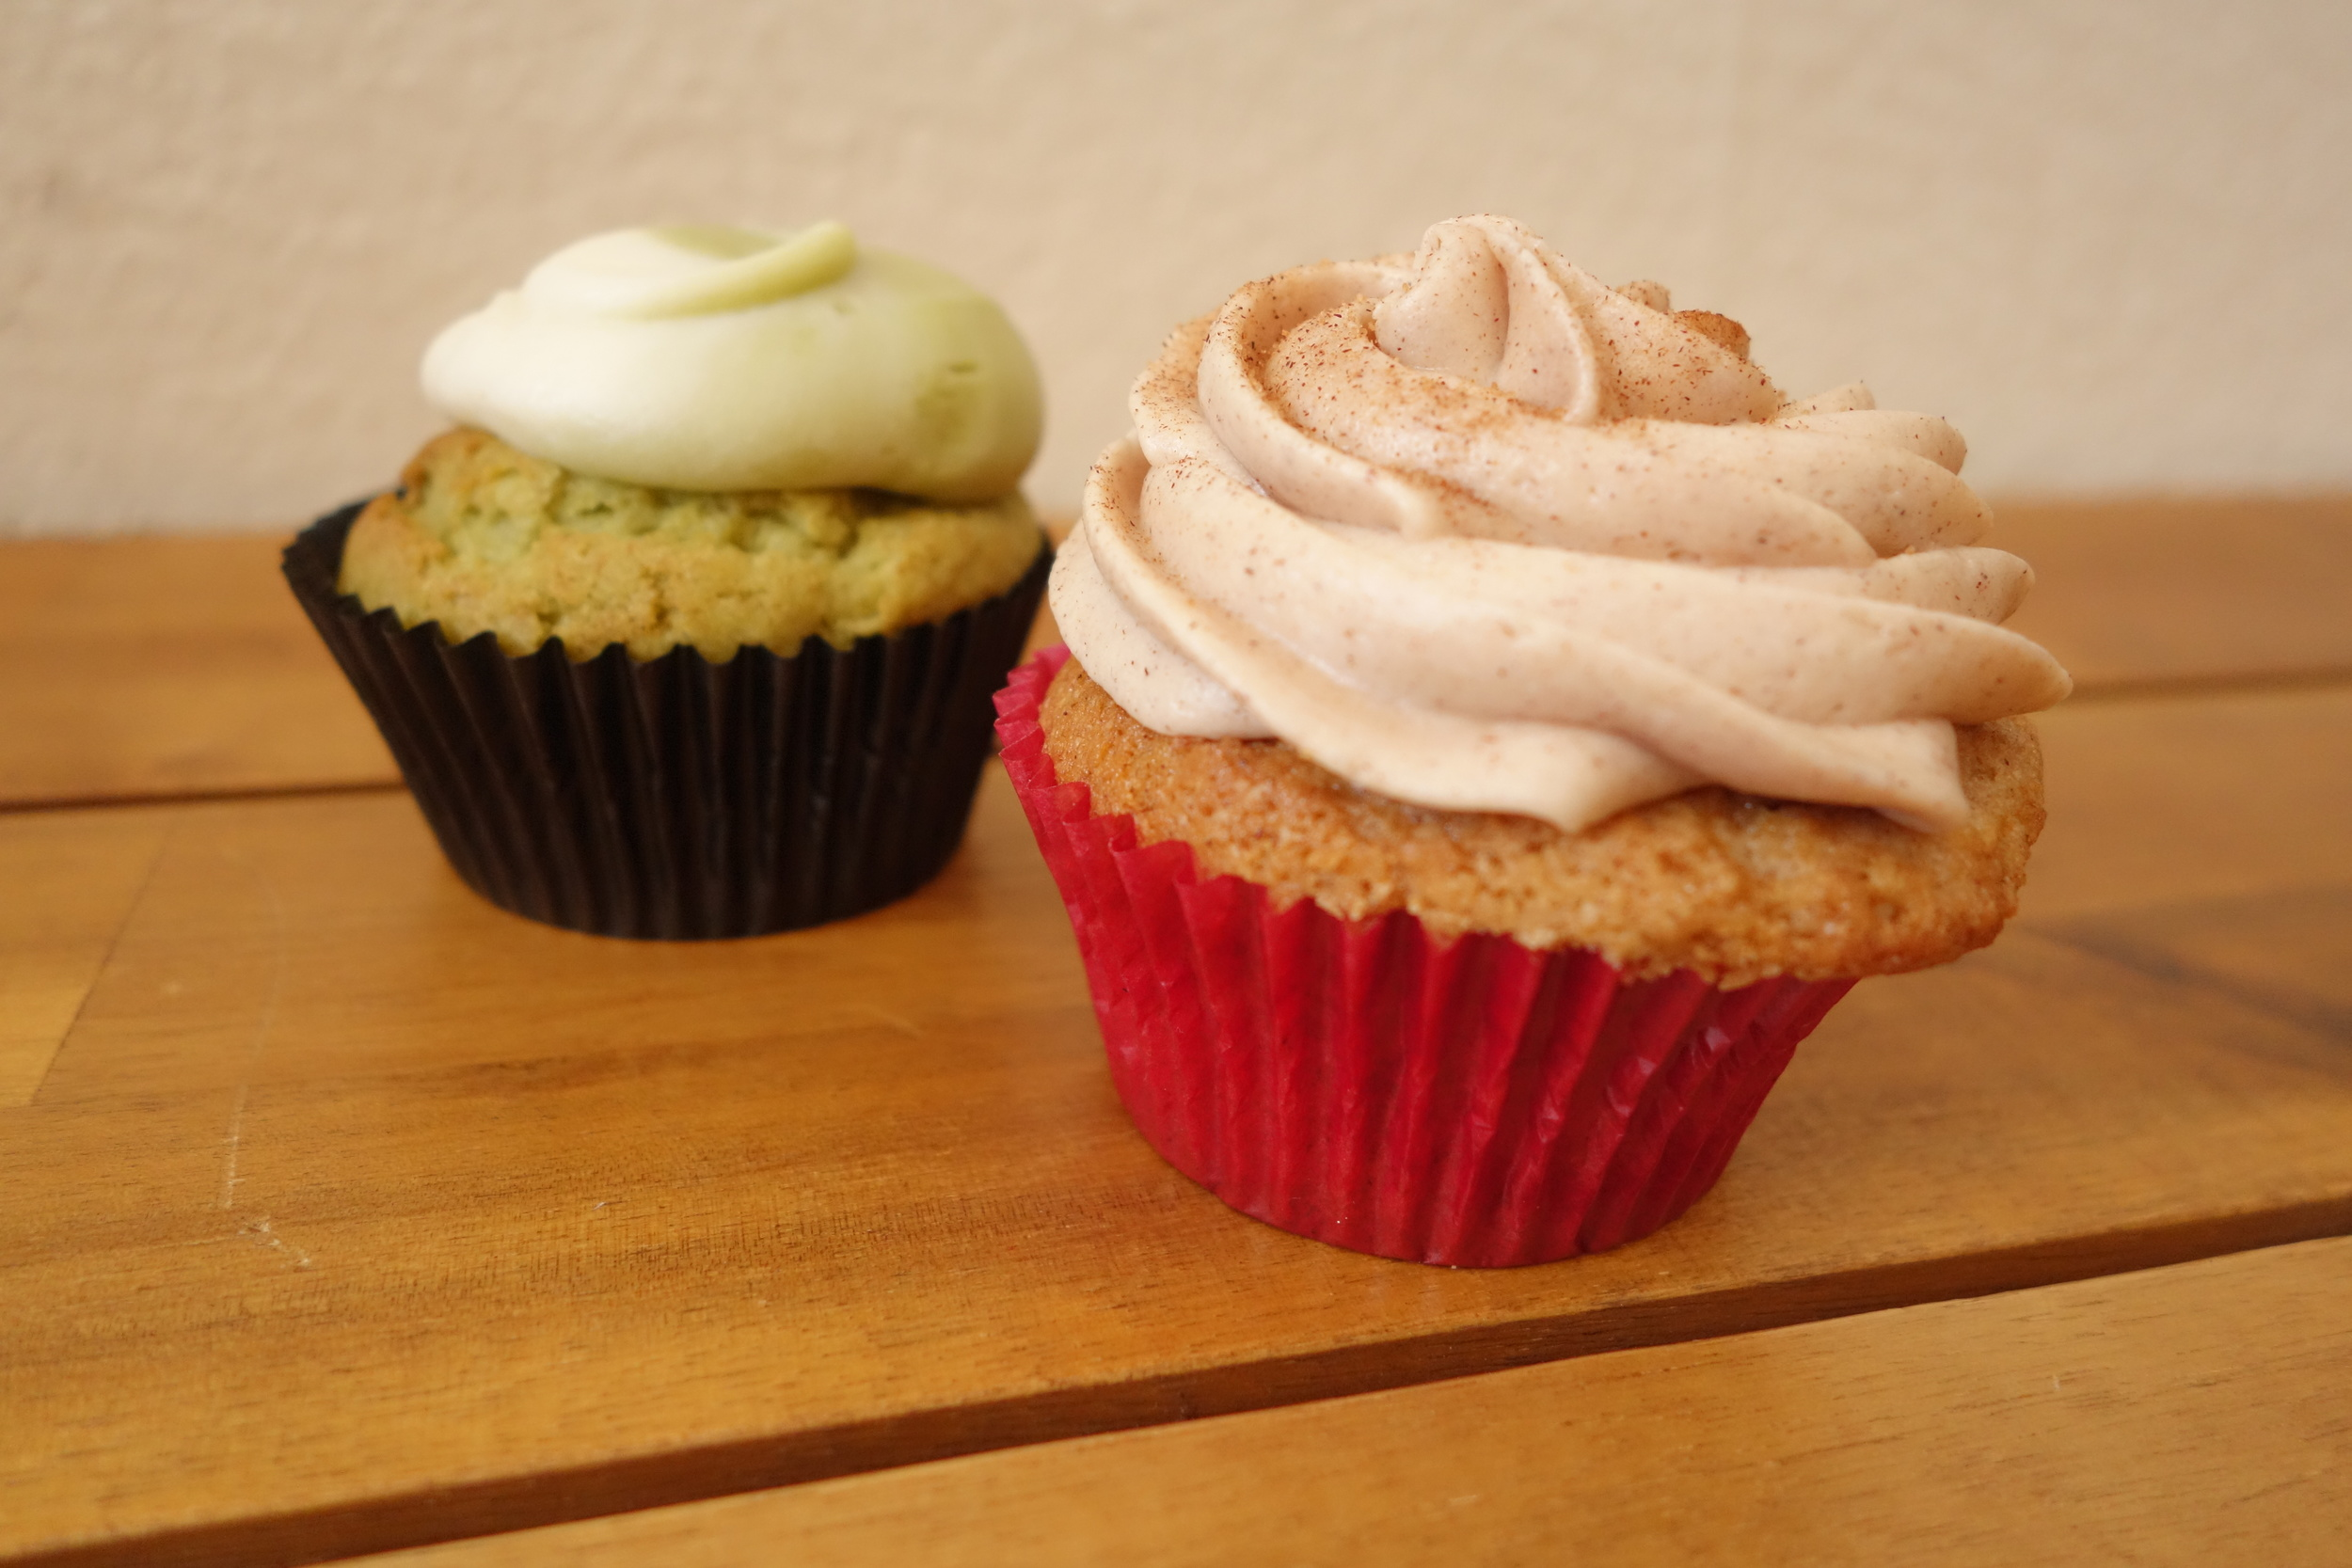 Green Tea Cupcake (Left) & Churro Cupcake (Right) by We The Minis at Taiwan Bento.